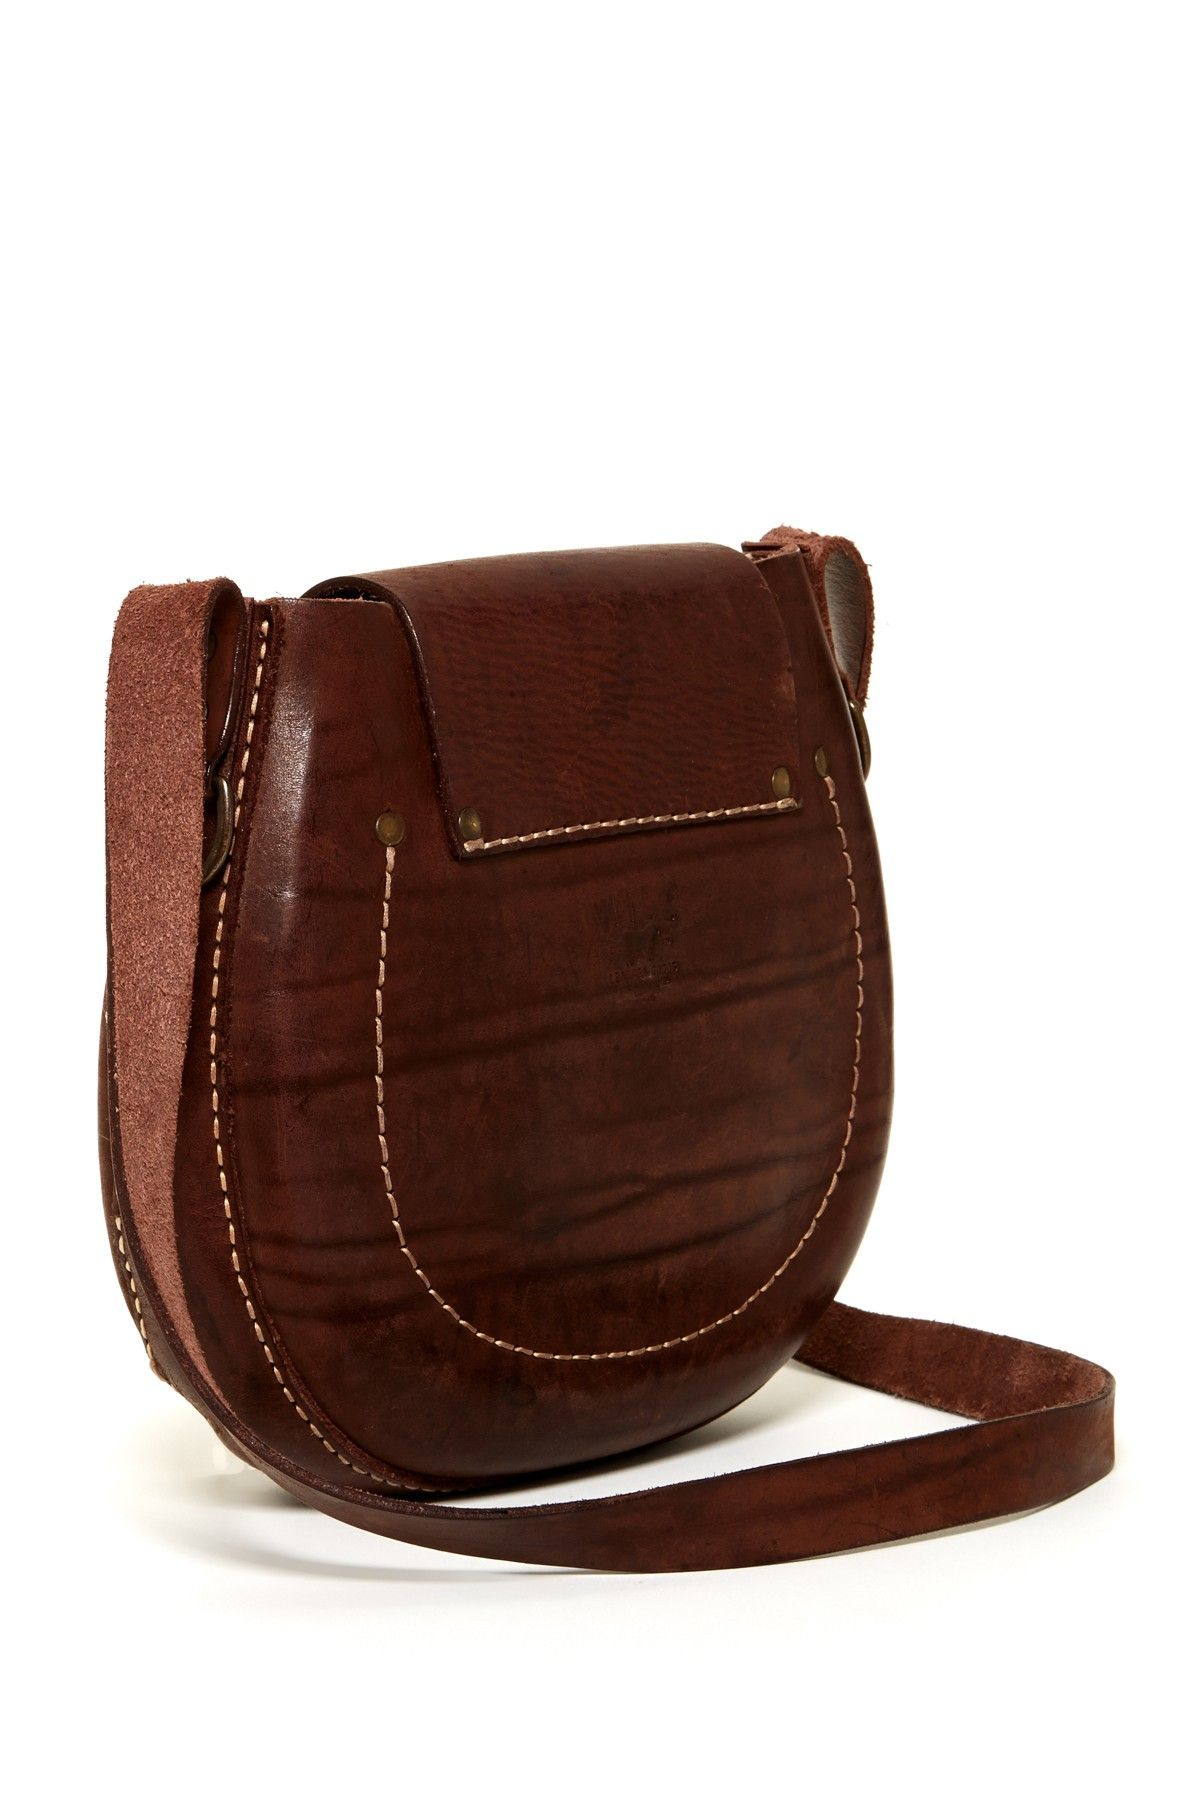 Will Leather Goods Elsie Crossbody by Will Leather Will Leather Goods Will  Leather Goods Elsie Crossbody  155.97 619a3f778